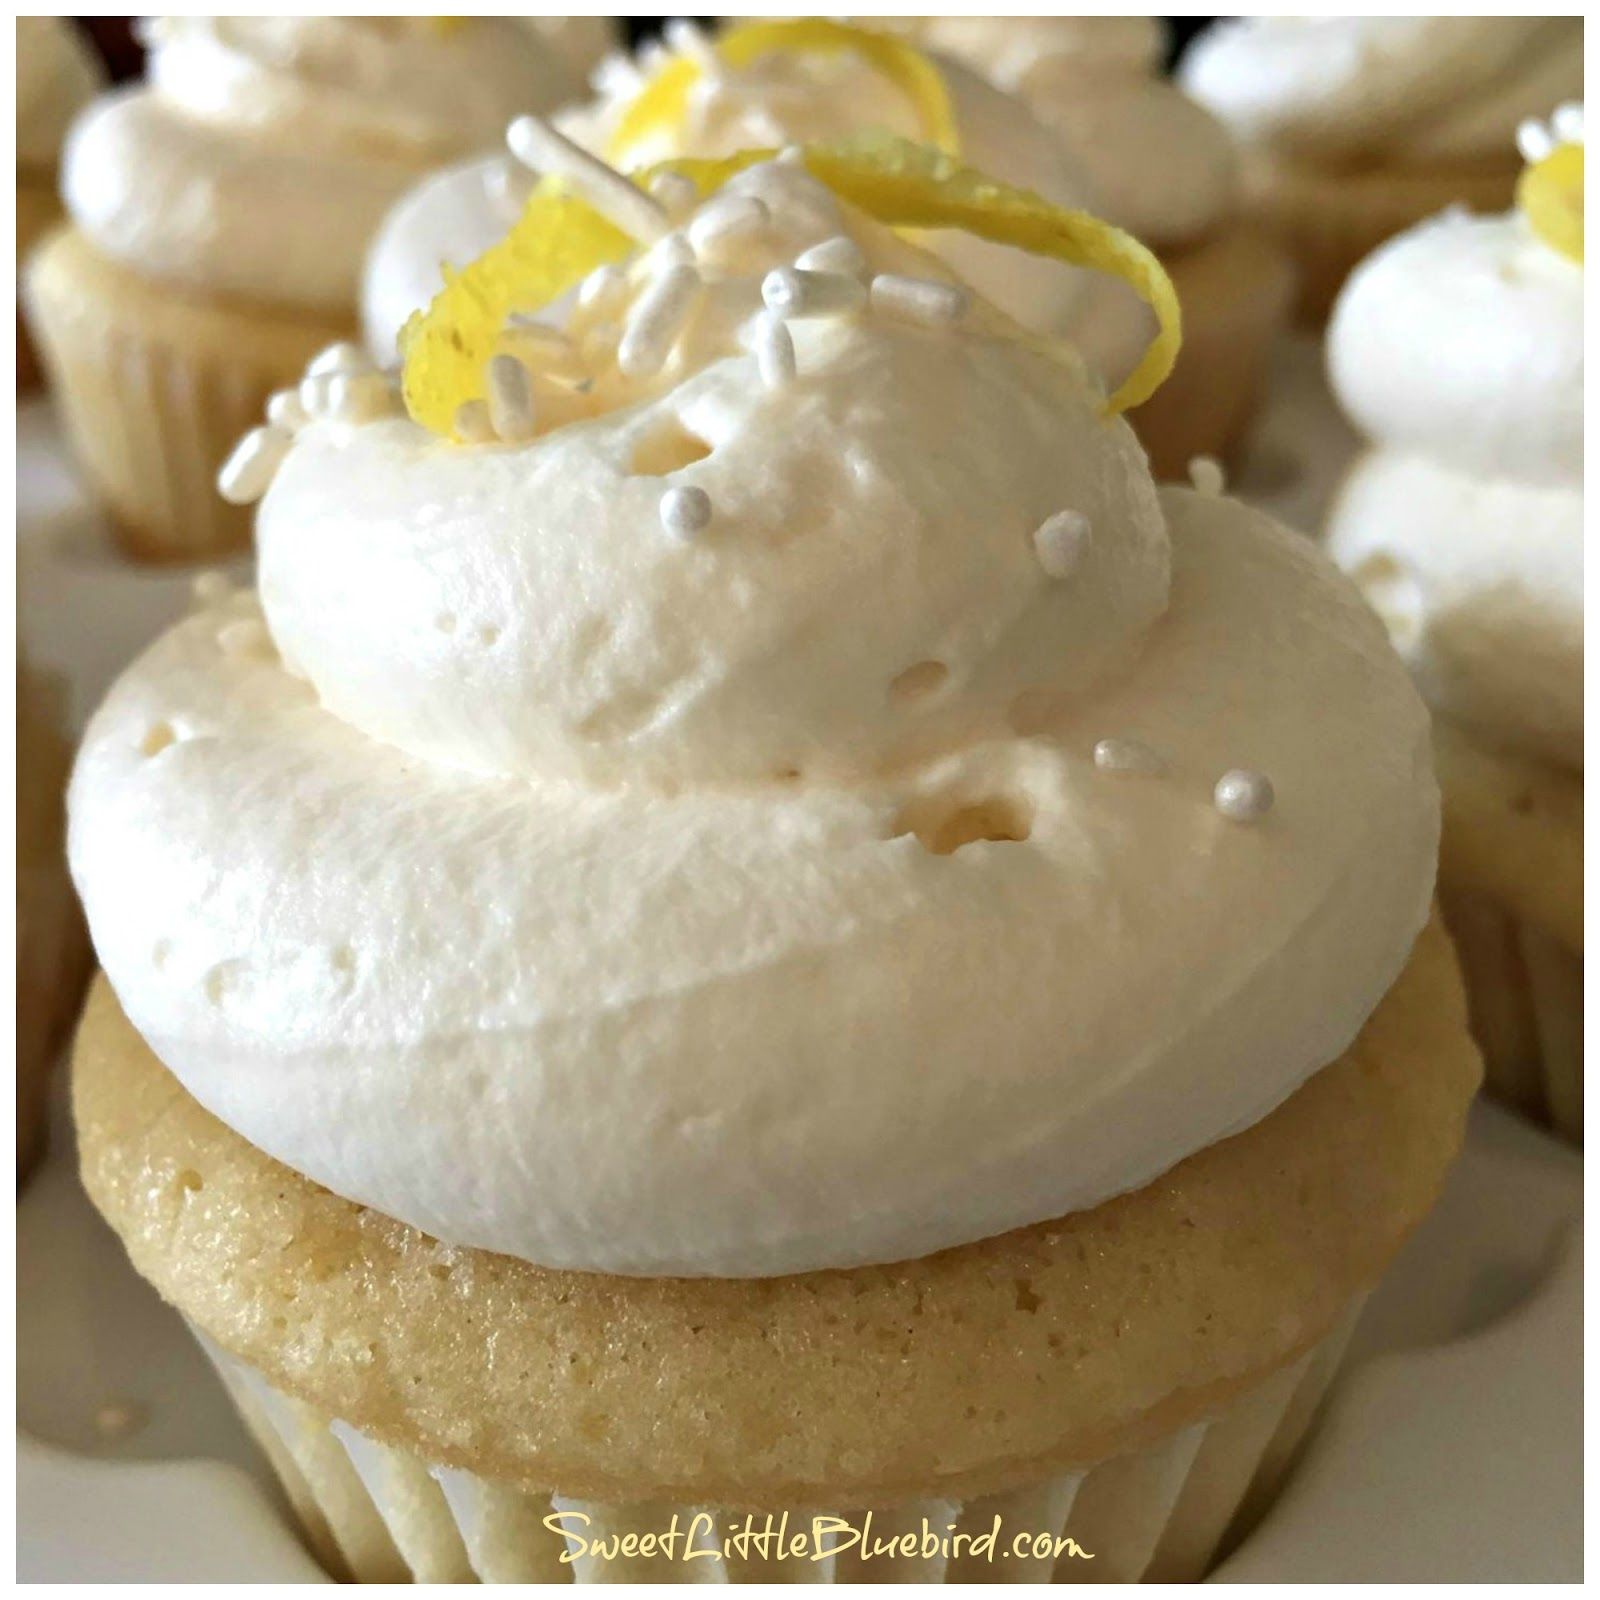 Lemon Curd Whipped Cream Cake Filling